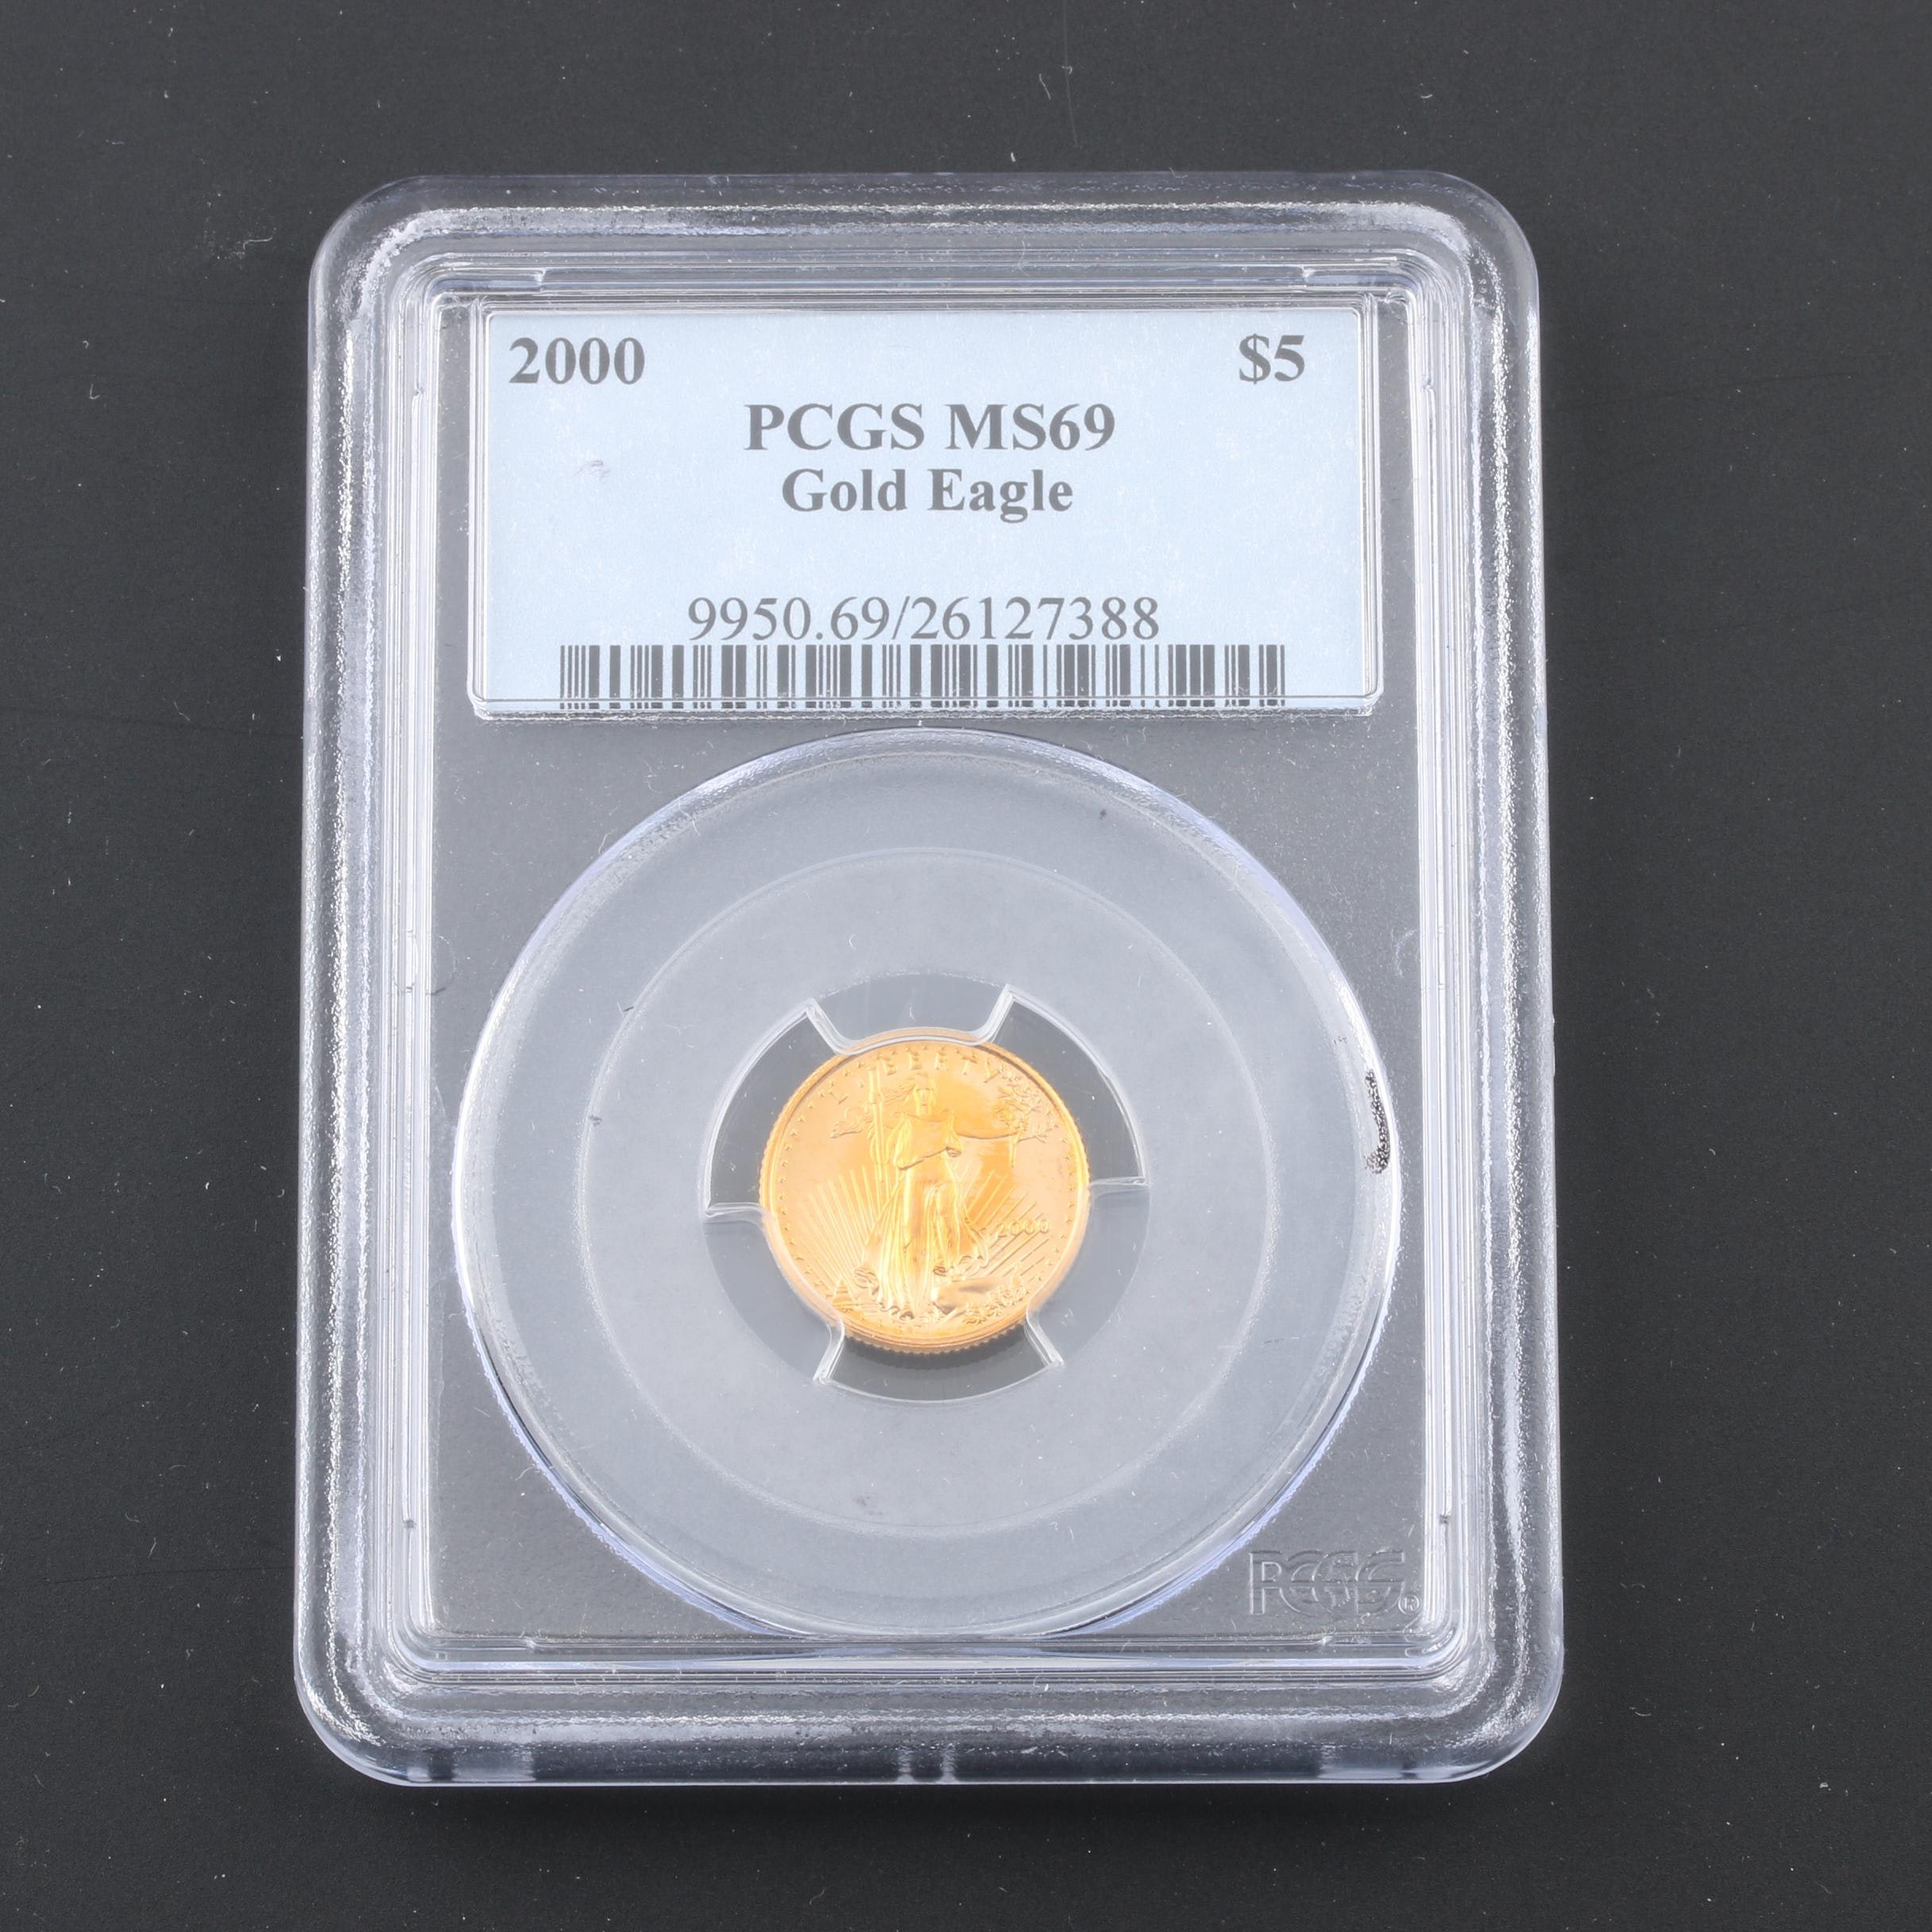 PCGS Graded MS69 1/10 Oz. $5 Gold Eagle Coin